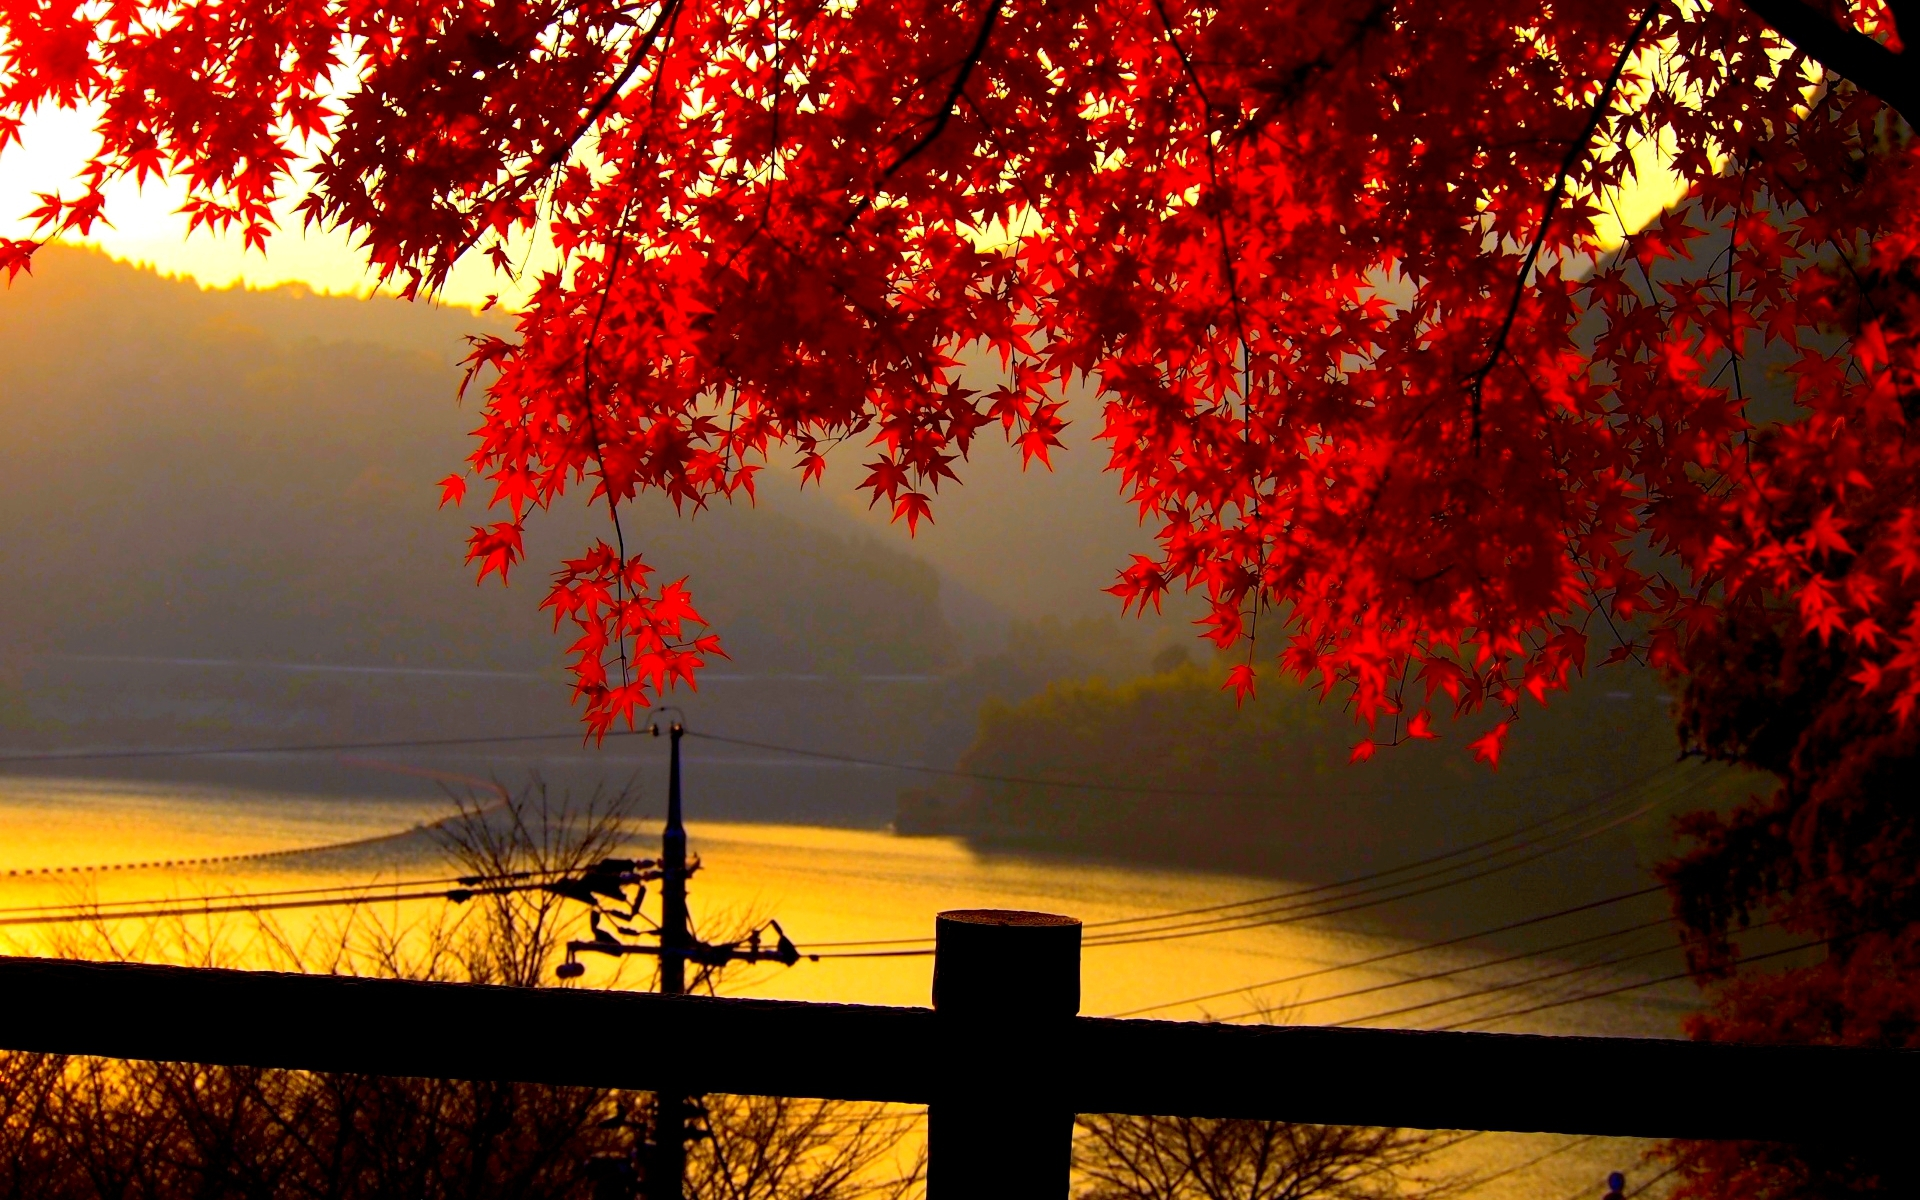 Red Autumn Leaves P Ography Hd Wallpapers For Beckground | Fall